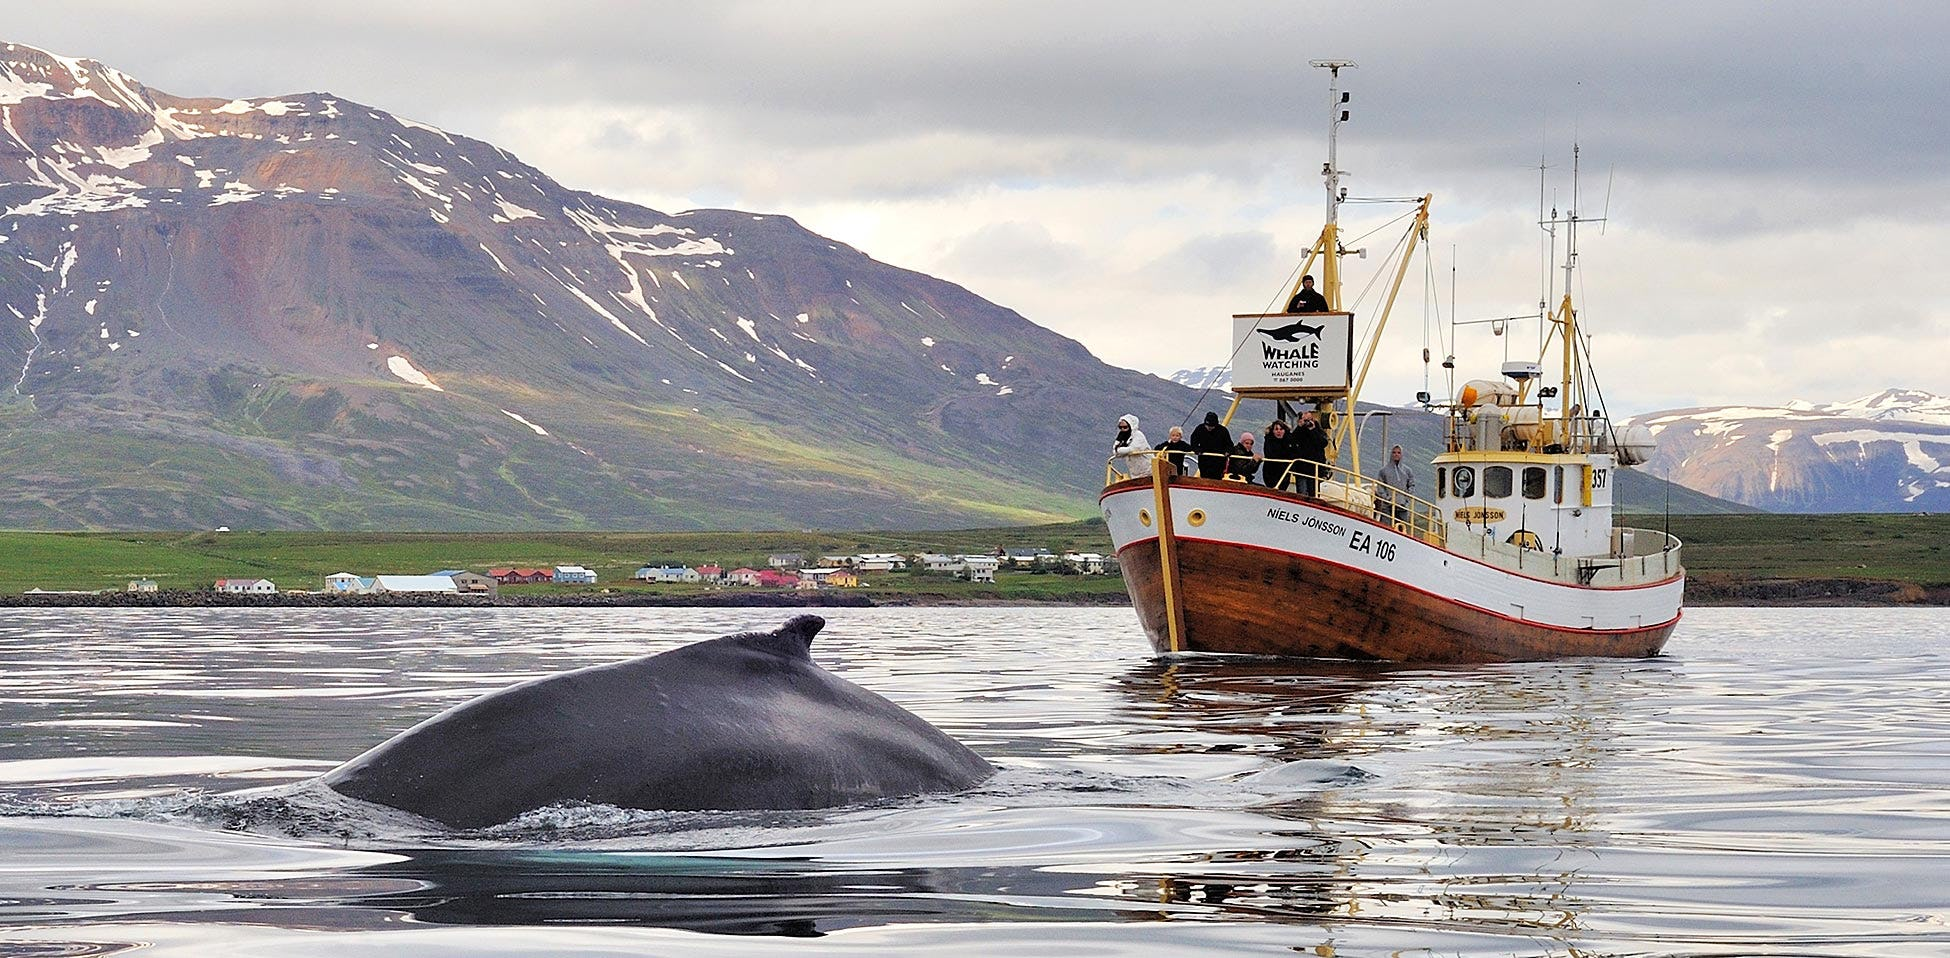 The species most commonly spotted on this Whale Watching and Sea Angling tour are the great Humpback Whales, Minke Whales, Harbour Porpoise, and White Beaked Dolphins.